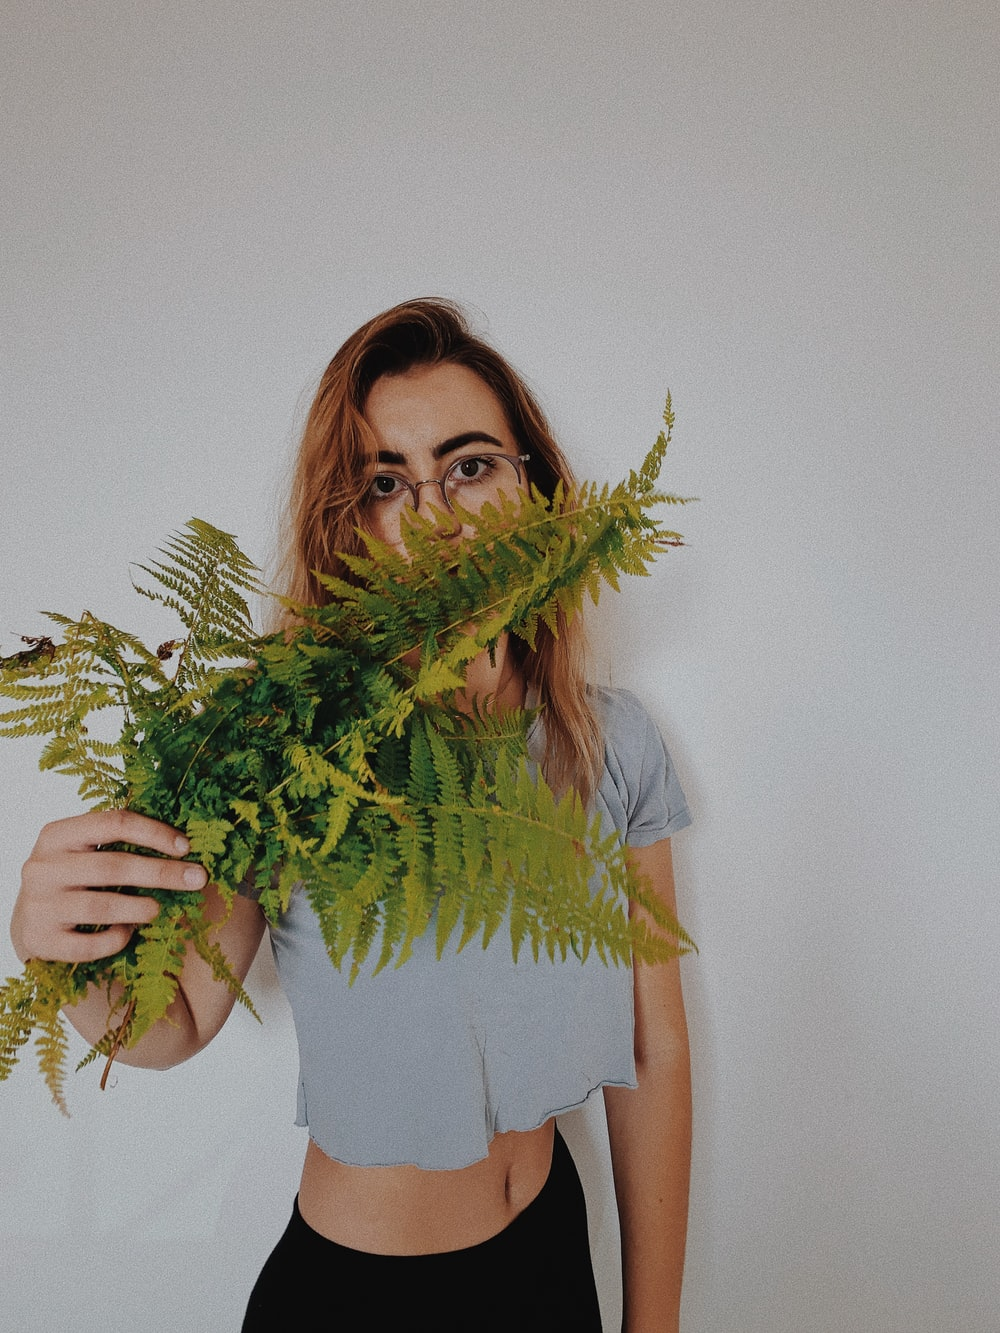 woman in blue t-shirt holding green plant